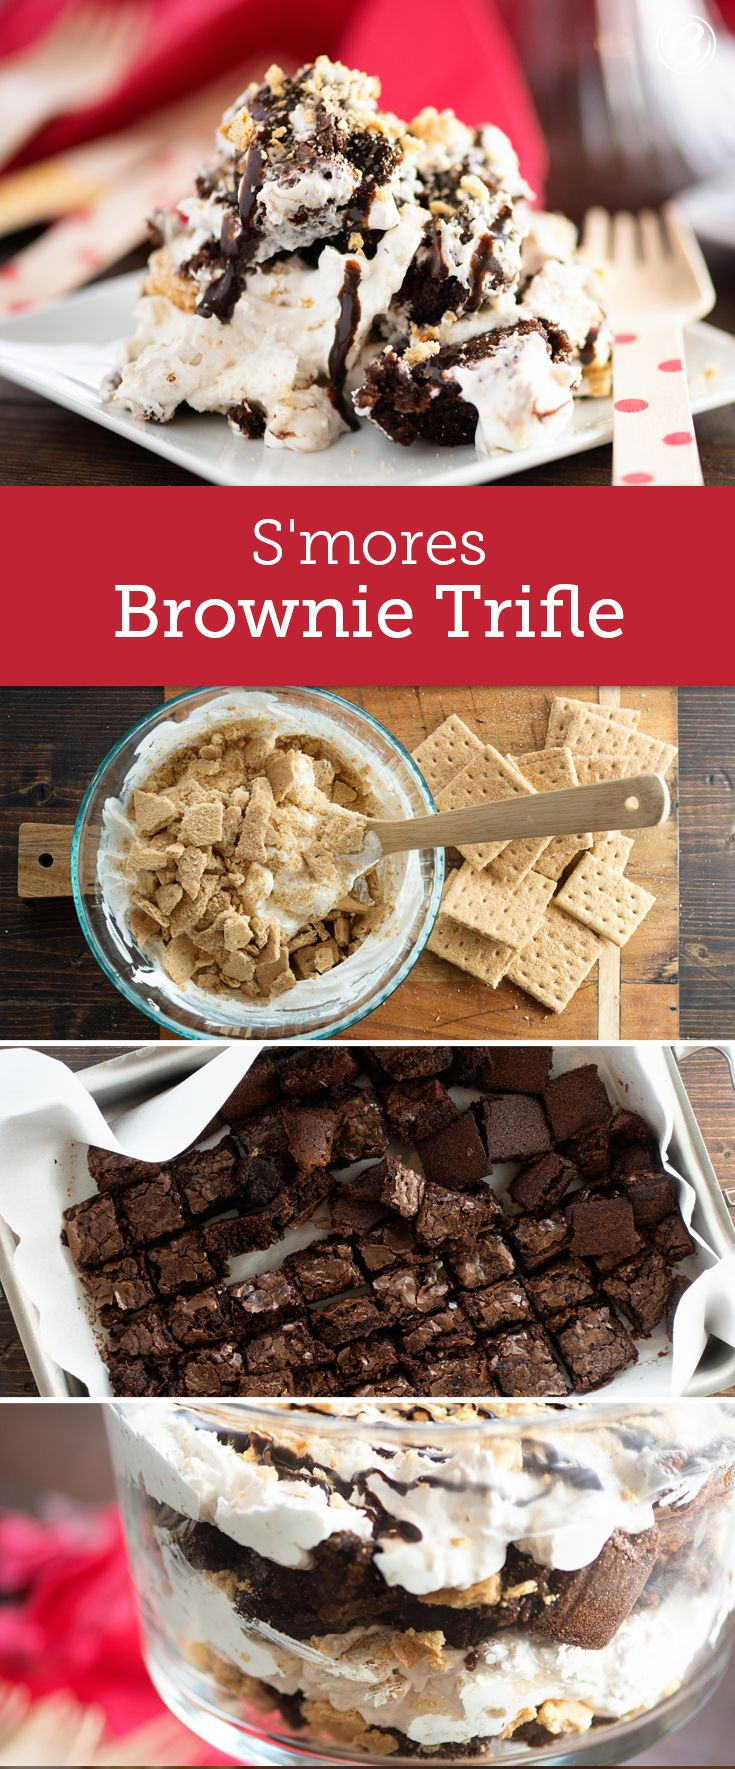 Skip the campfire and make s'mores indoors with this easy-to-assemble trifle!